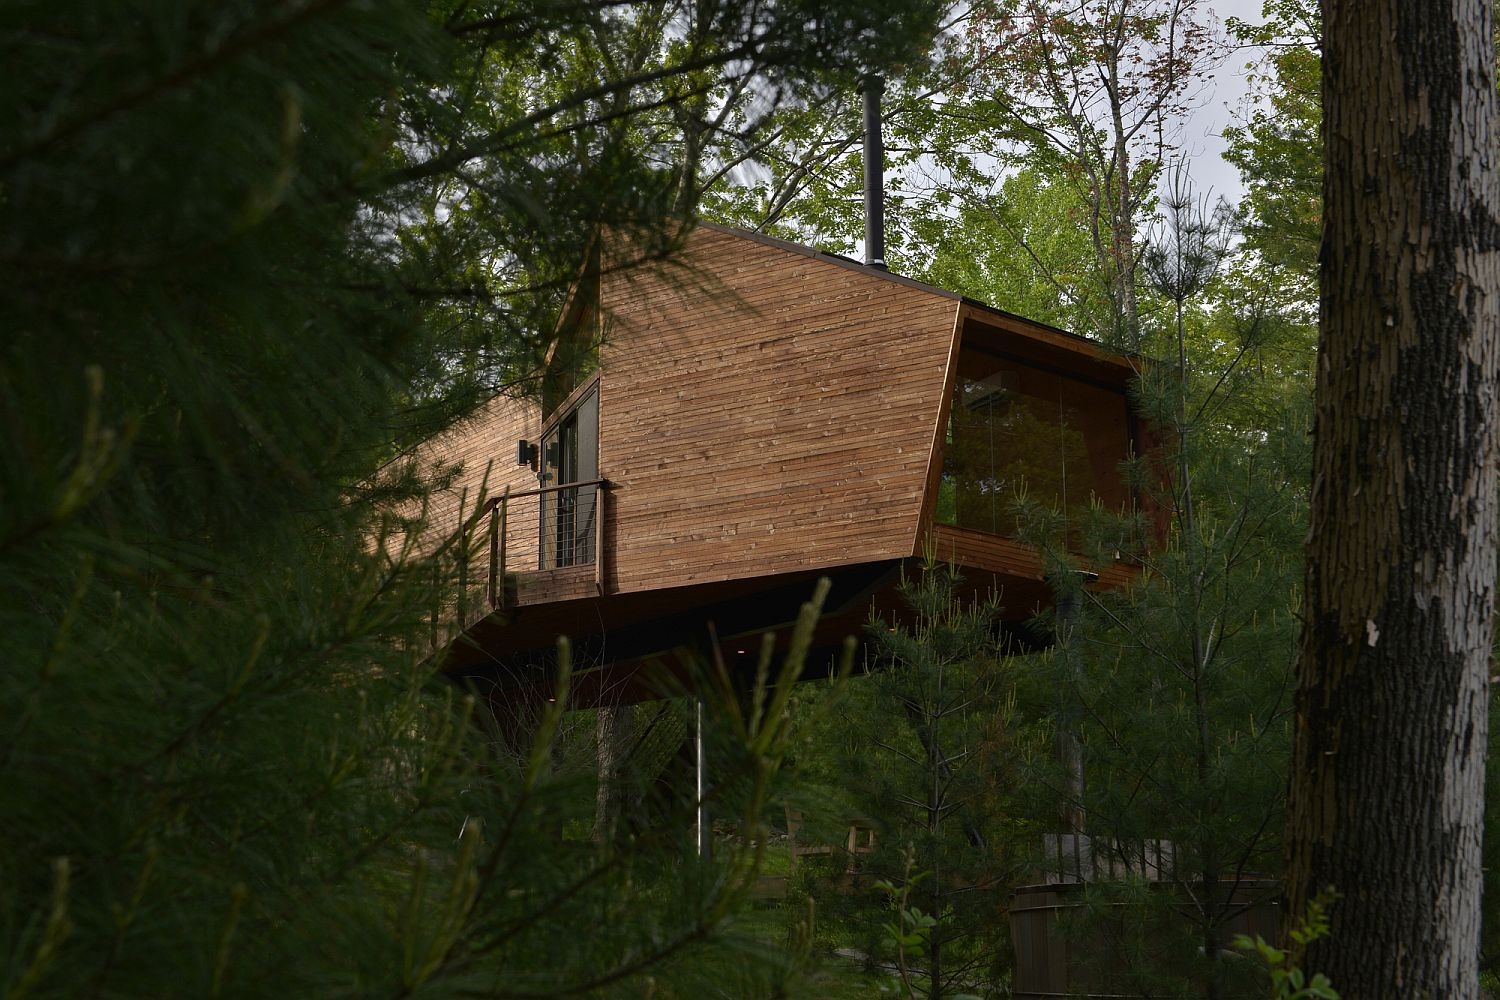 Elevated level of the cabin offers lovely views of the lush green scenery and beyond